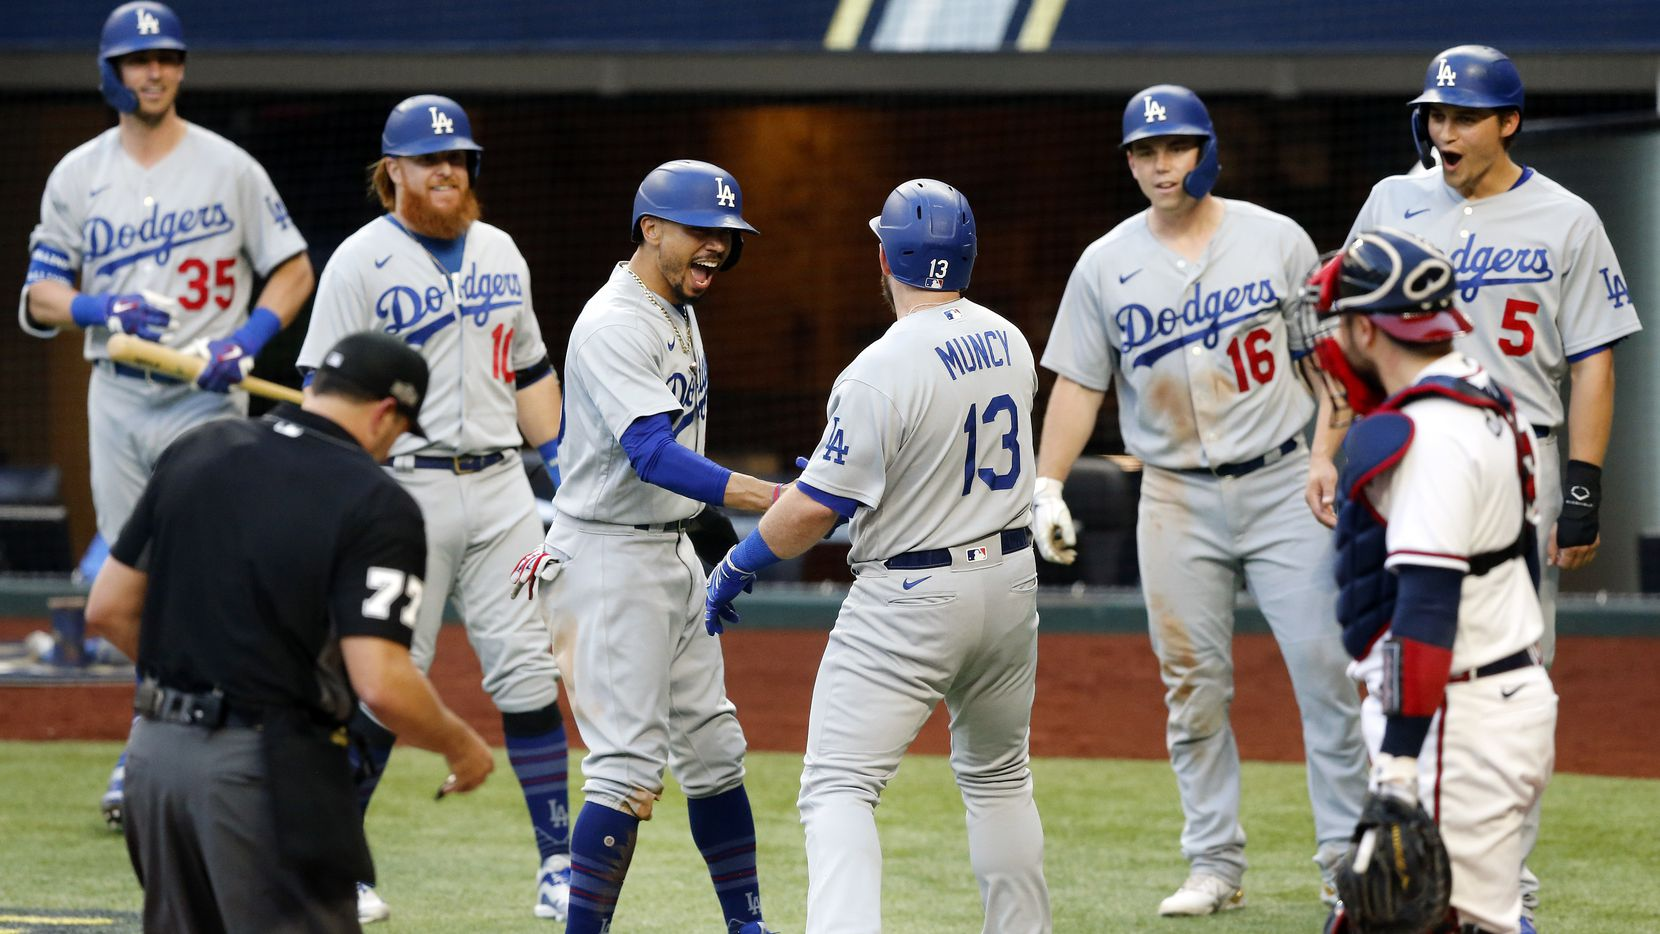 Los Angeles Dodgers first baseman Max Muncy (13) is welcomed to home plate by his teammates after his first inning grand slam in Game 3 of the National League Championship Series at Globe Life Field in Arlington, Wednesday, October 14, 2020. (from left) Los Angeles Dodgers Cody Bellinger (35), Justin Turner (10), Mookie Betts (50), Will Smith (16) and Corey Seager (5) are part of the 11-run first celebration. (Tom Fox/The Dallas Morning News)